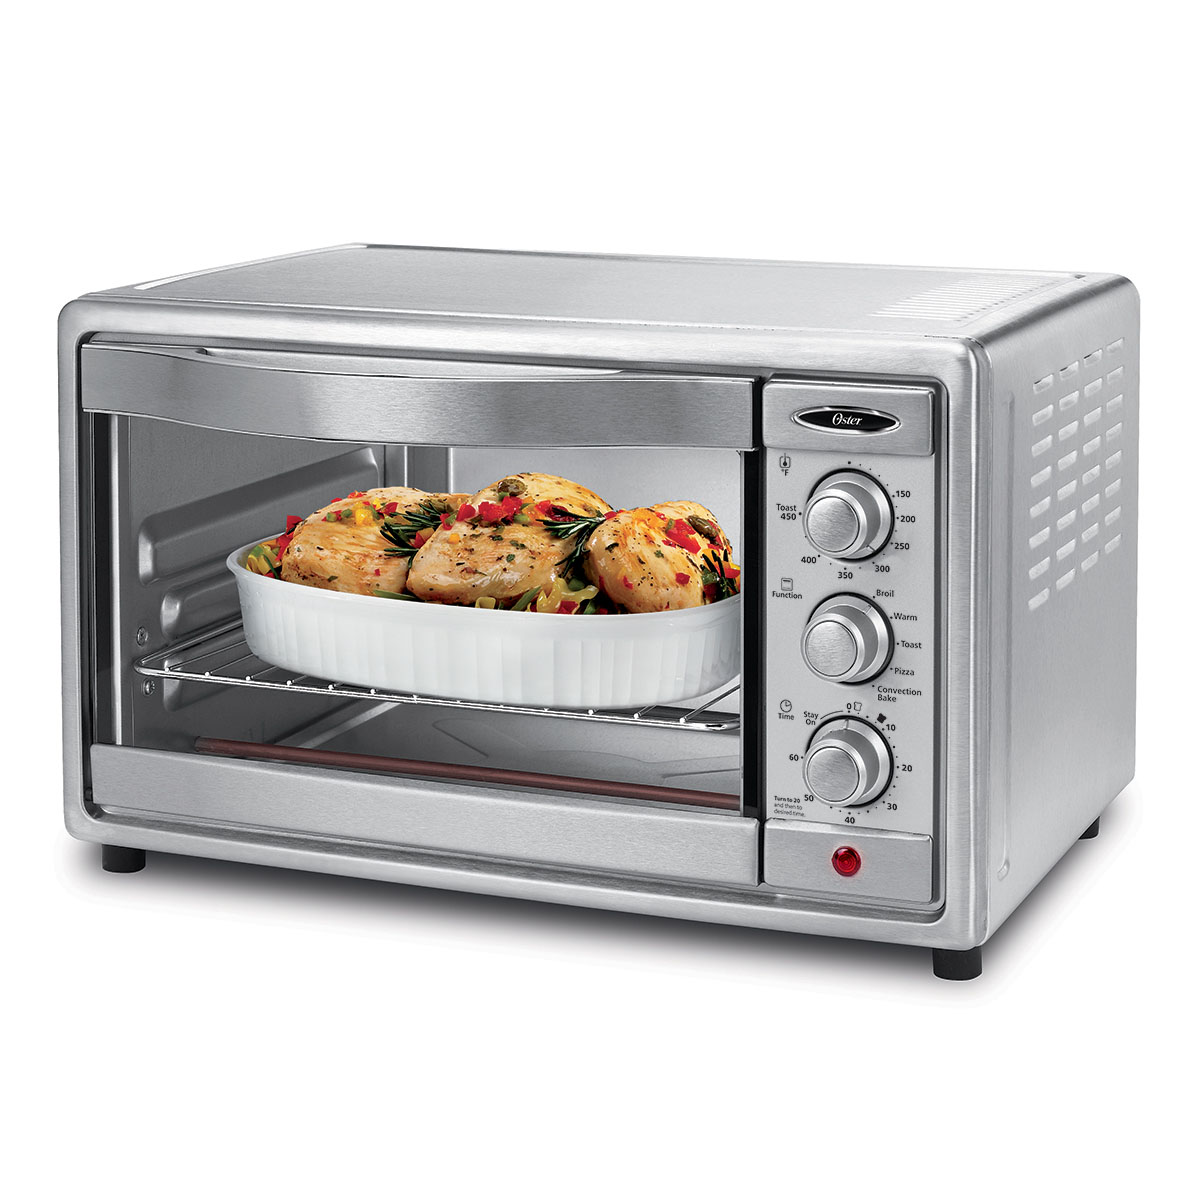 Oster TSSTTVRB04 6-Slice Convection Toaster Oven, Brushed St